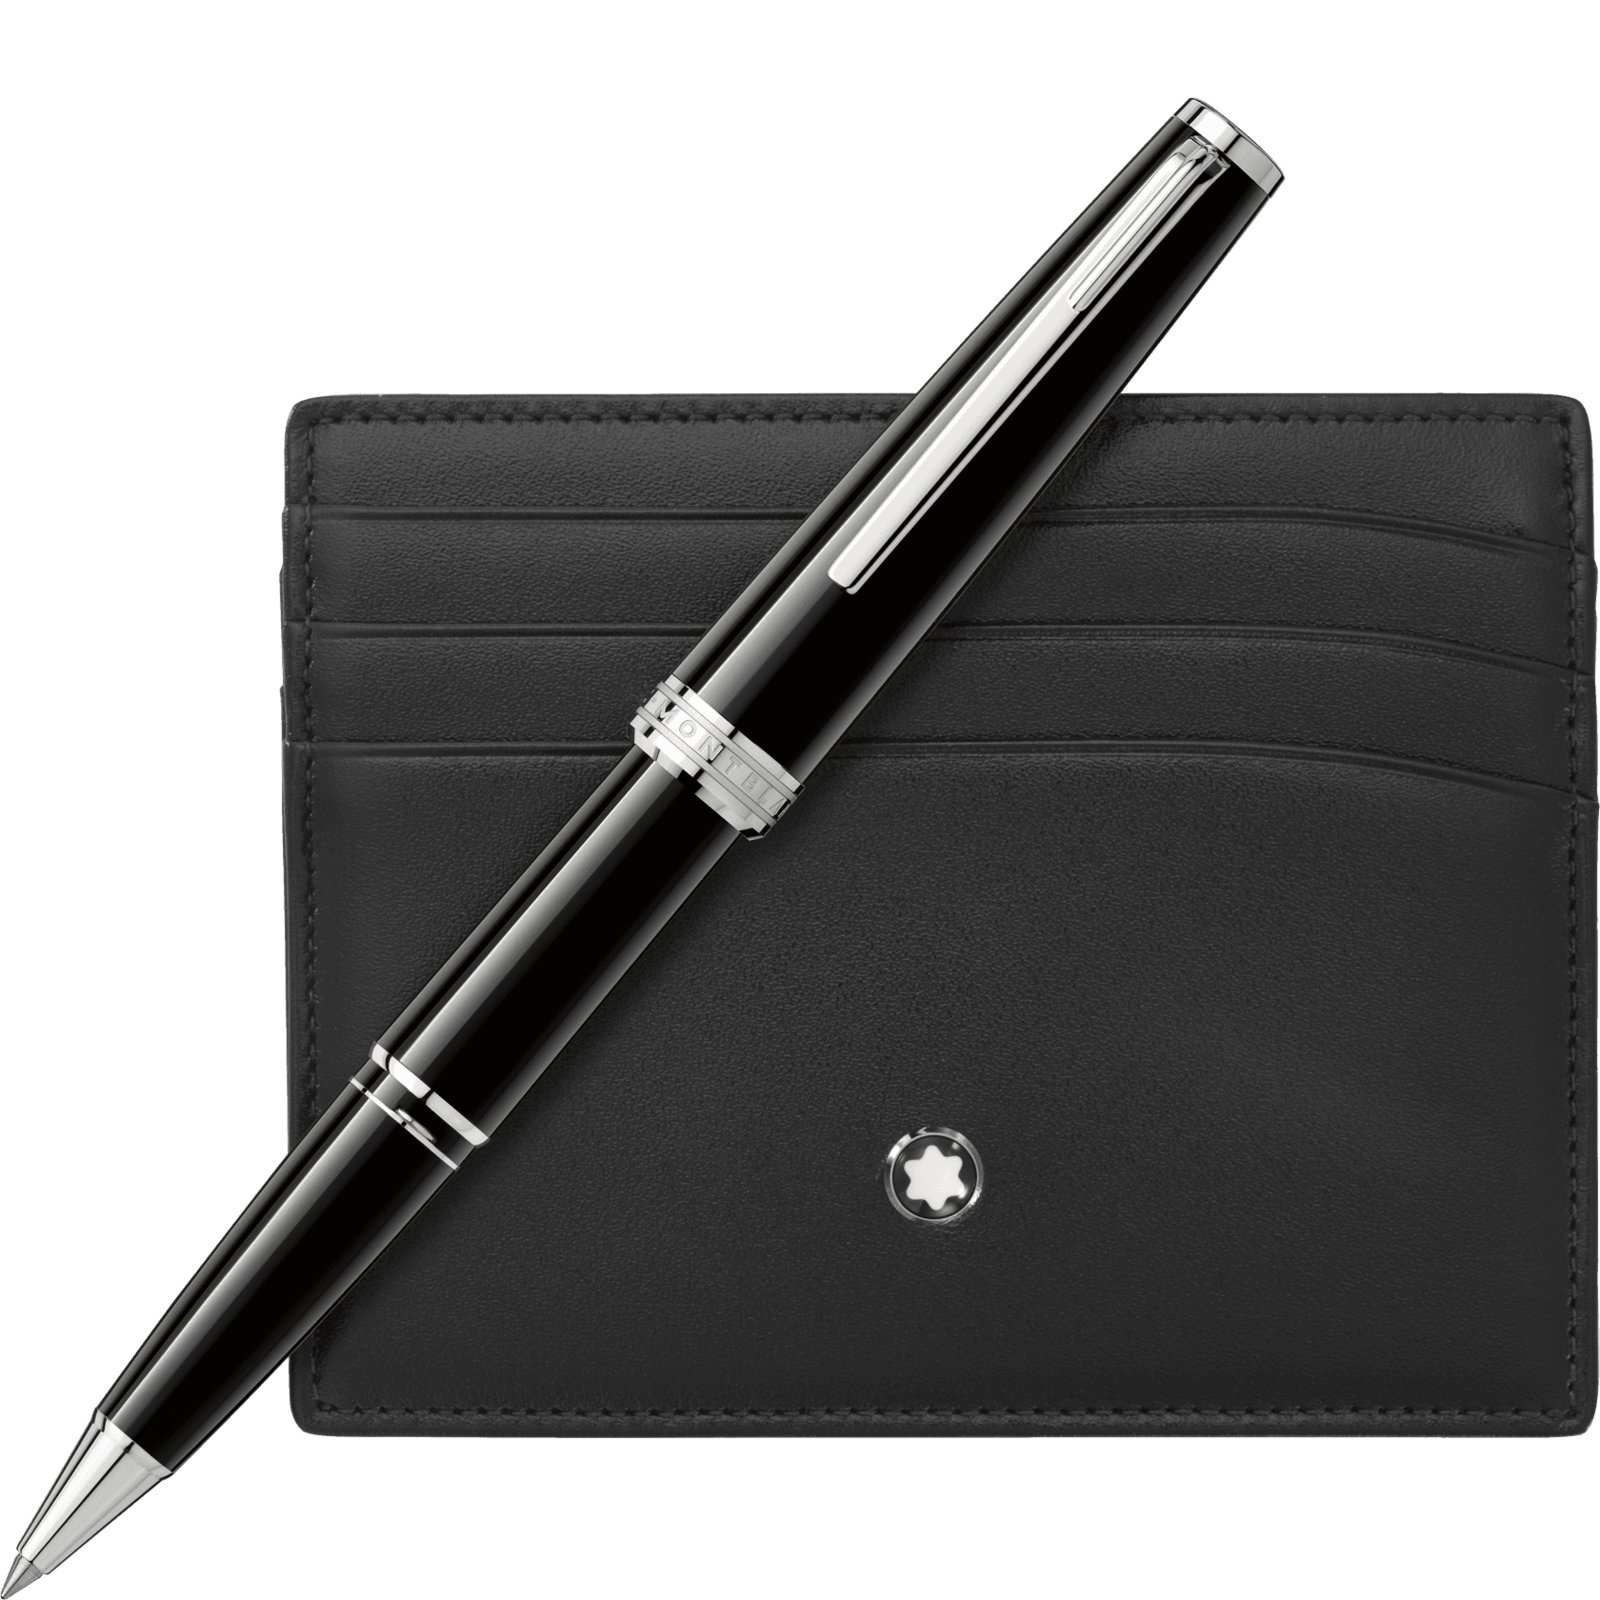 Montblanc Set with Montblanc PIX Black Rollerball and Black Pocket Holder 6cc 116118